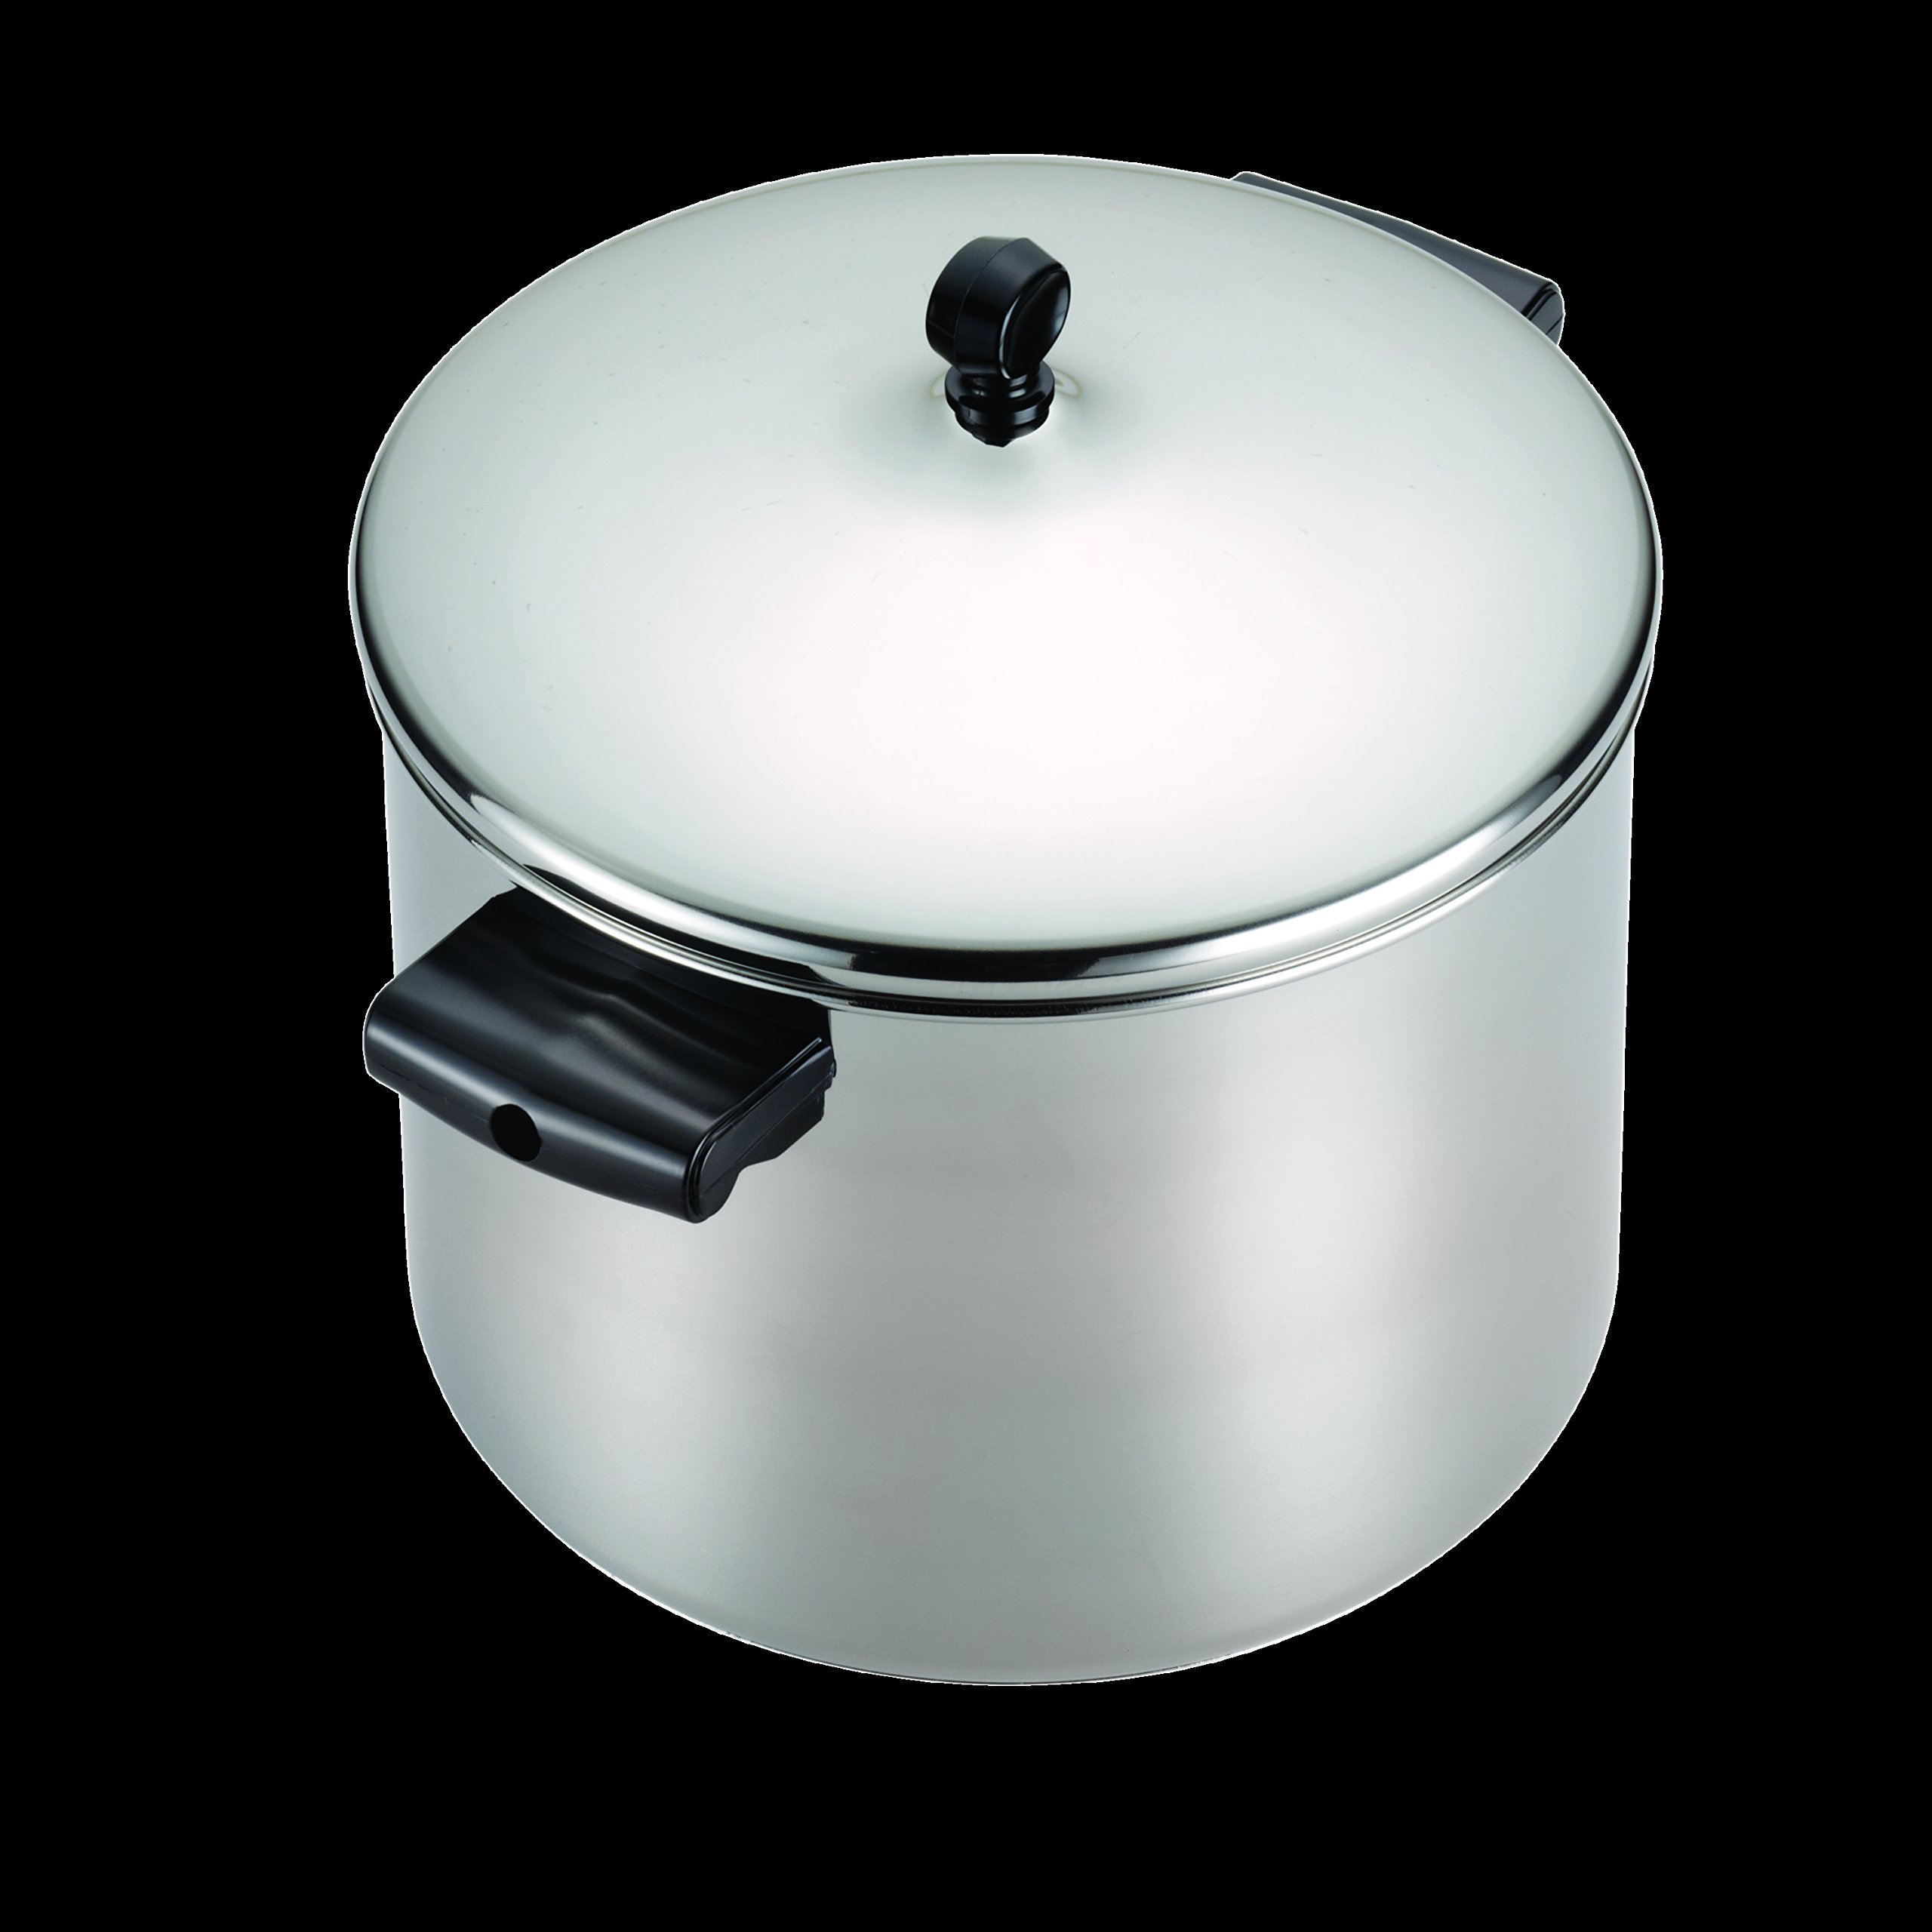 Farberware Classic Stainless Steel 6-Quart Covered Stockpot by Farberware (Image #4)